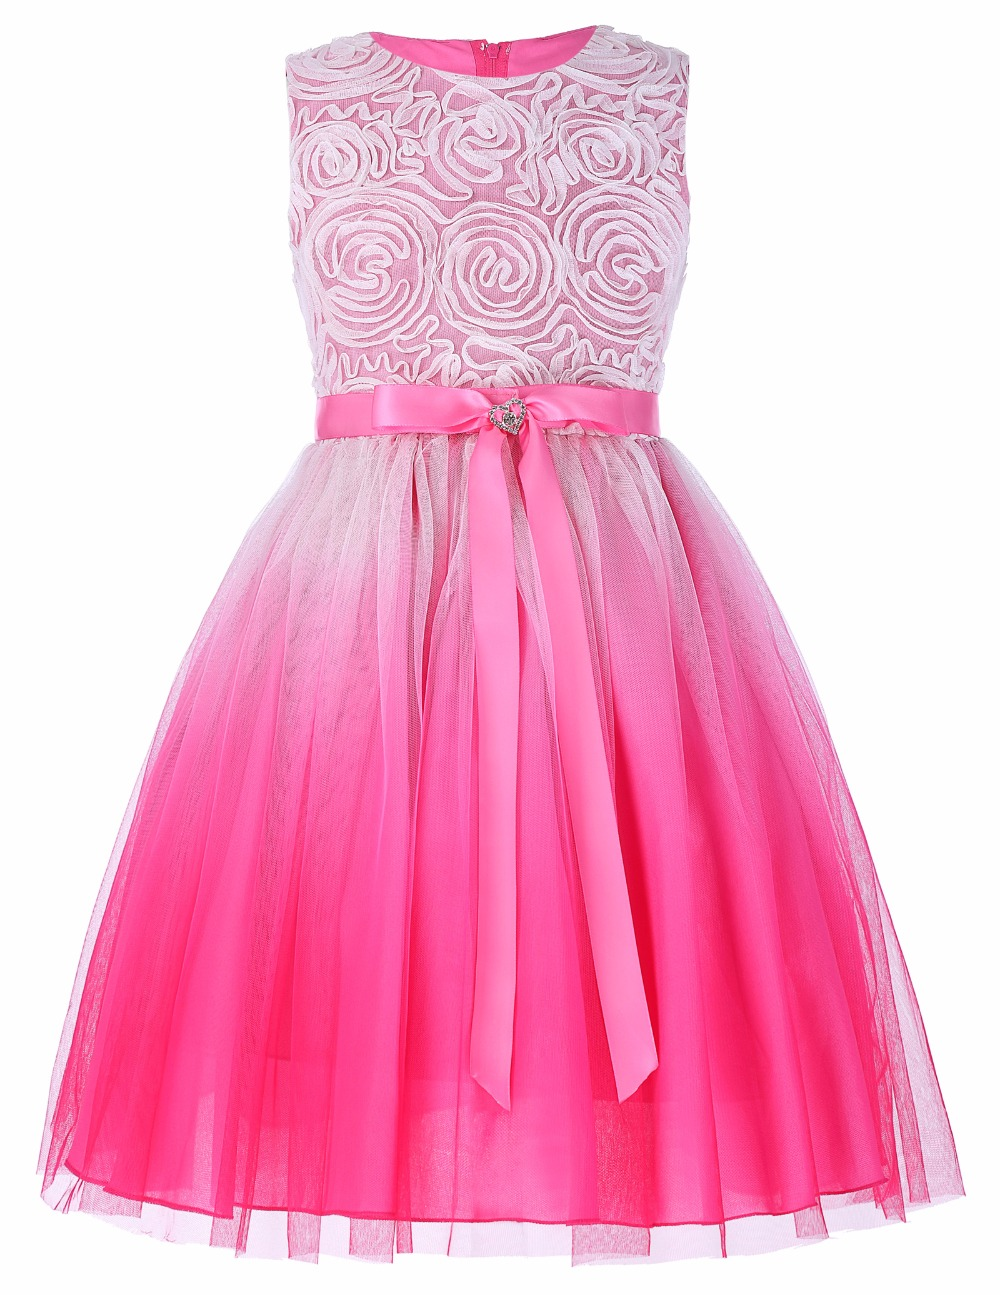 Grace Karin 2017 Flower Girl Dresses Luxury Tulle Flower Party Dresses For Wedding Party First Communion Dresses With Bow Ribbon 4